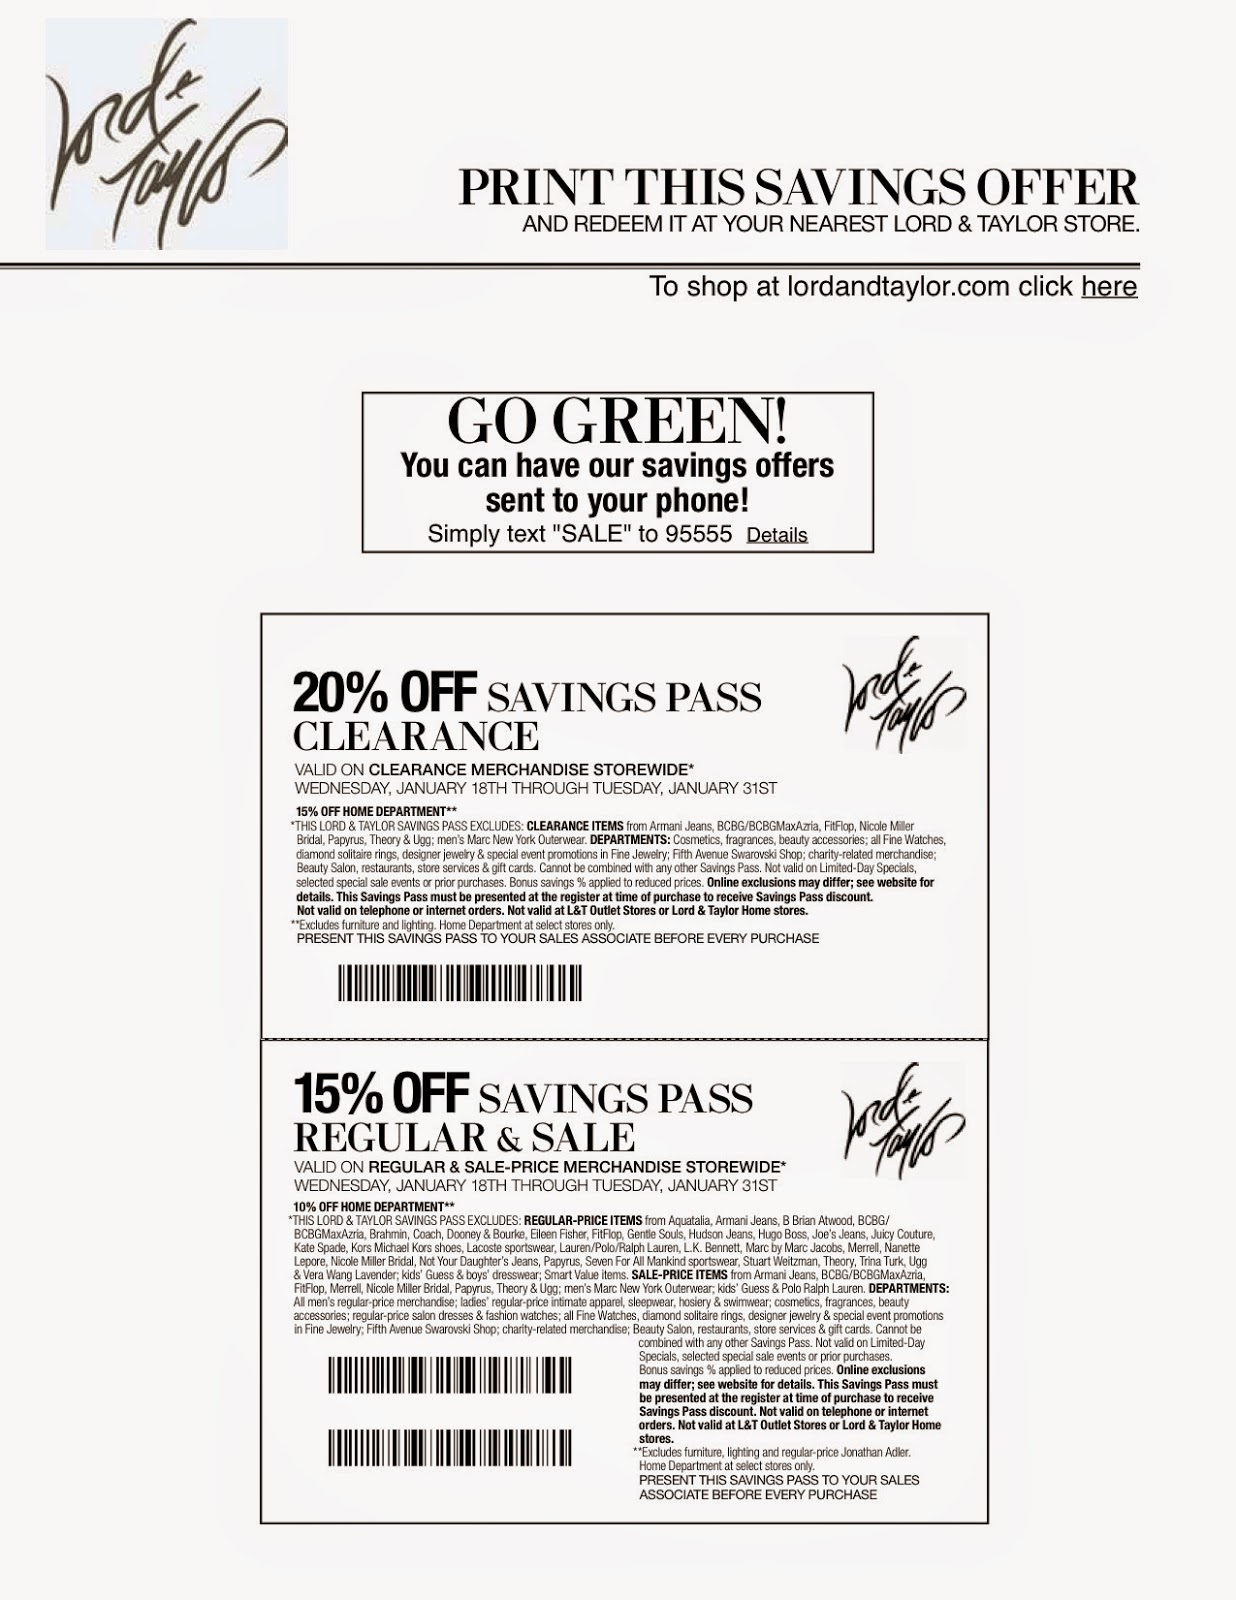 photo about Lord and Taylor Printable Coupon titled Lord and taylor lower price coupon - Great Wholesale